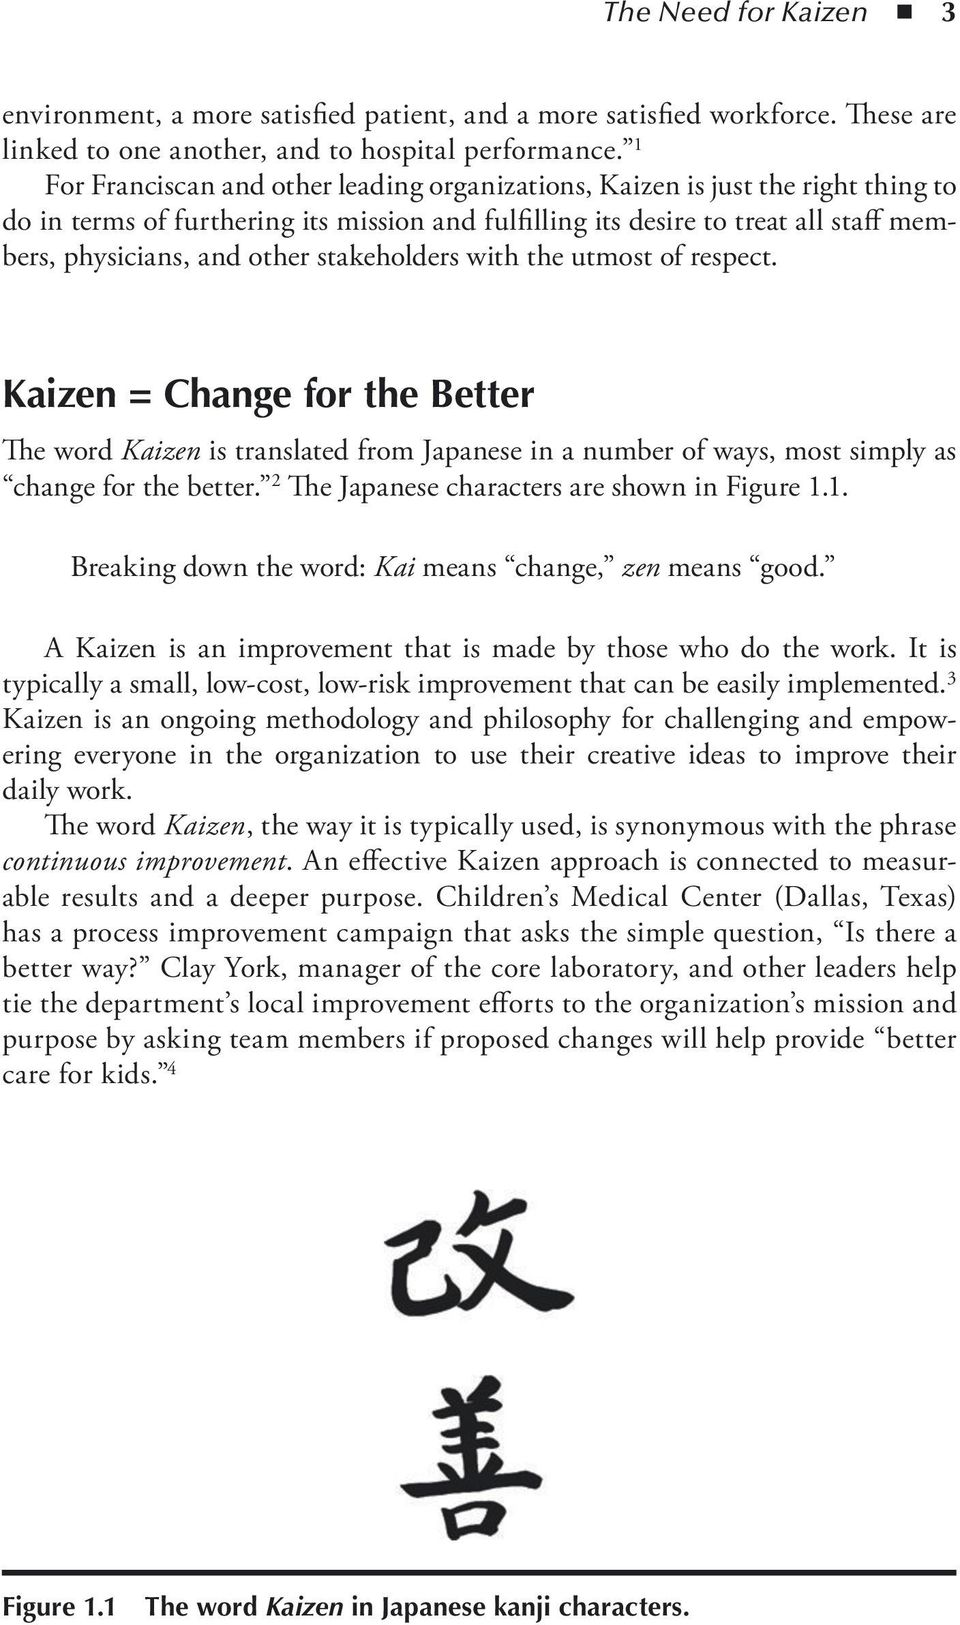 stakeholders with the utmost of respect. Kaizen = Change for the Better The word Kaizen is translated from Japanese in a number of ways, most simply as change for the better.